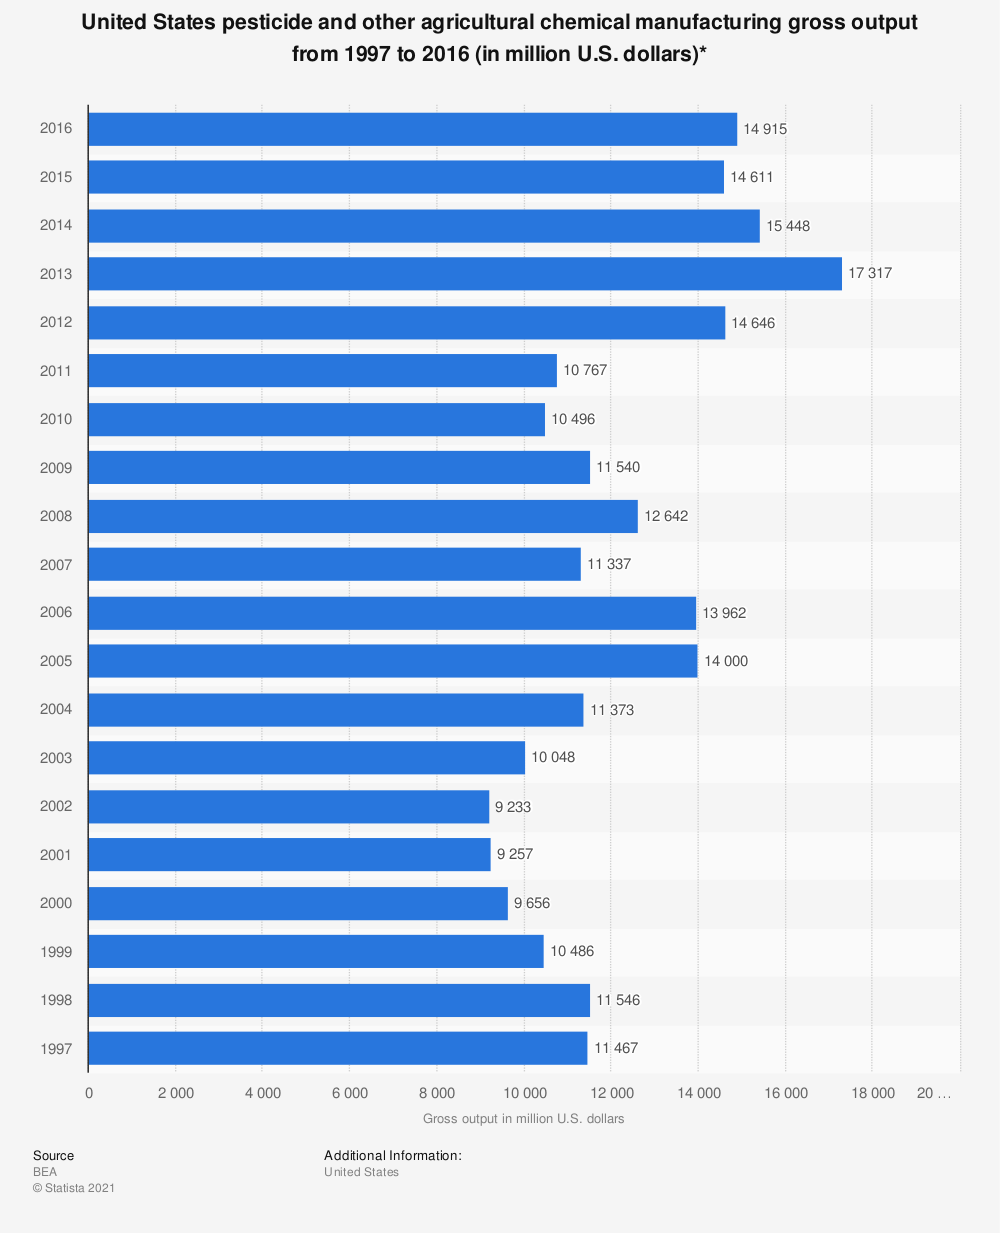 Statistic: United States pesticide and other agricultural chemical manufacturing gross output from 1997 to 2016 (in million U.S. dollars)* | Statista